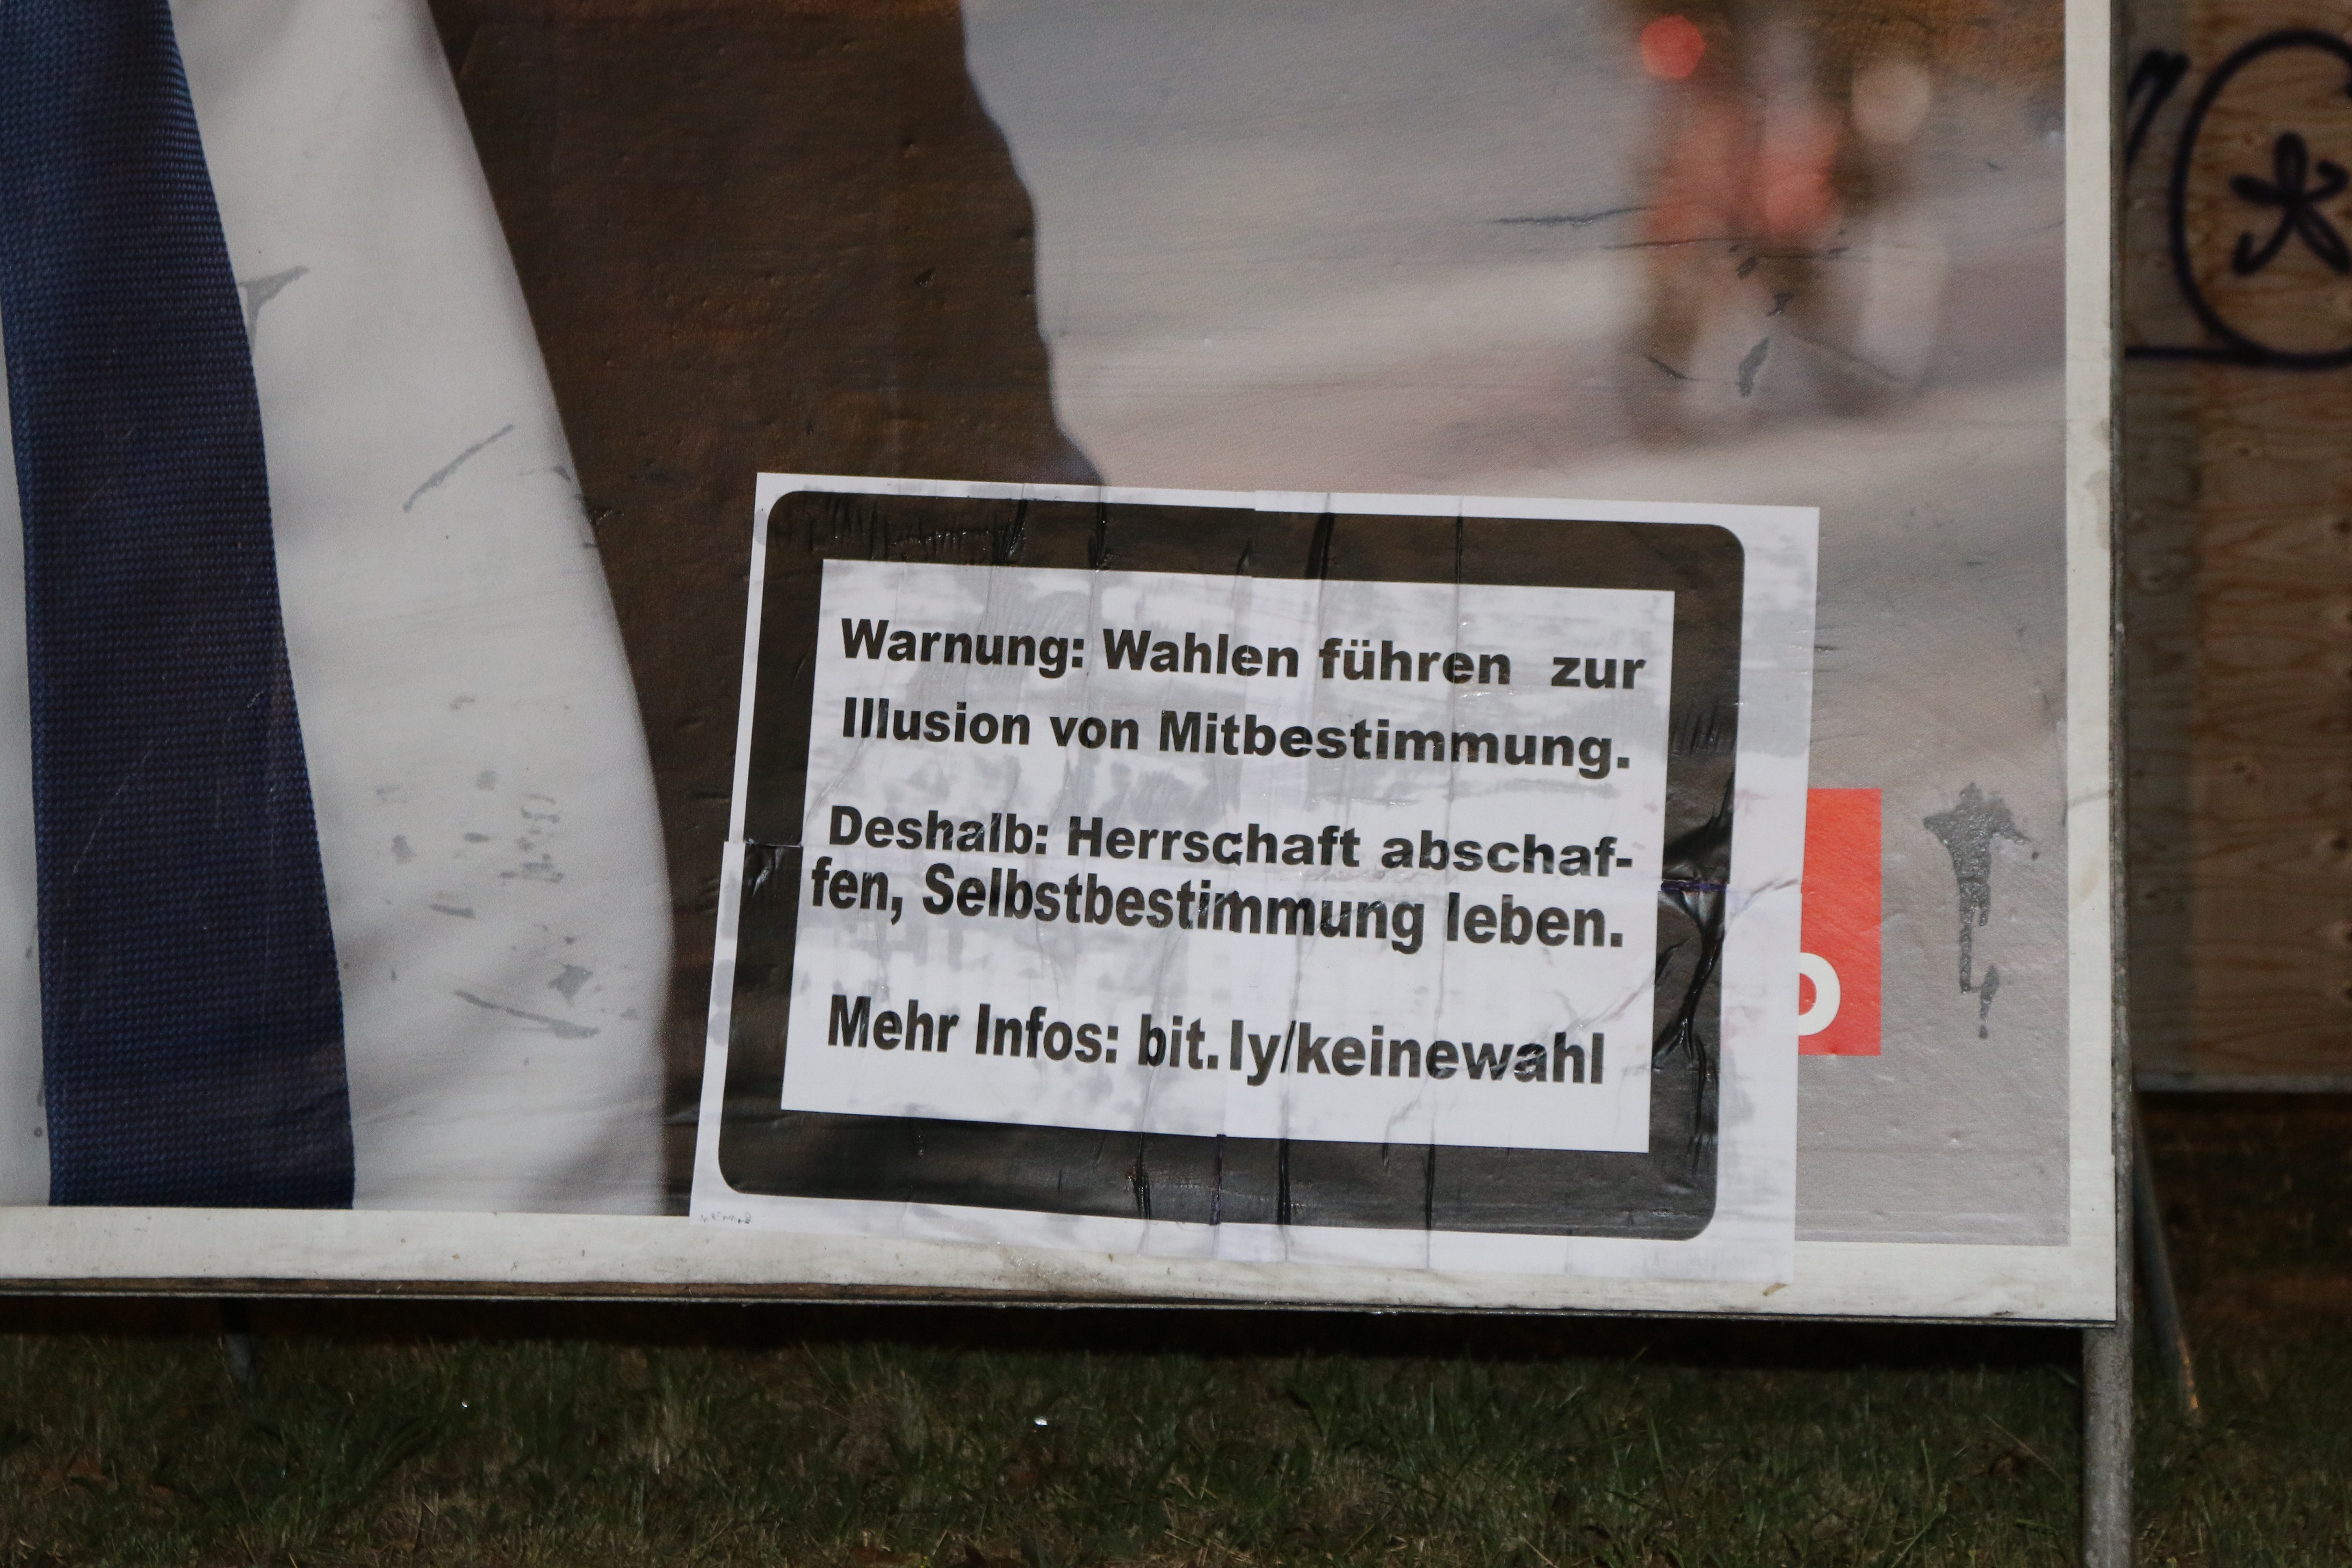 Plakatstörer*in in Warnhinweis-Form